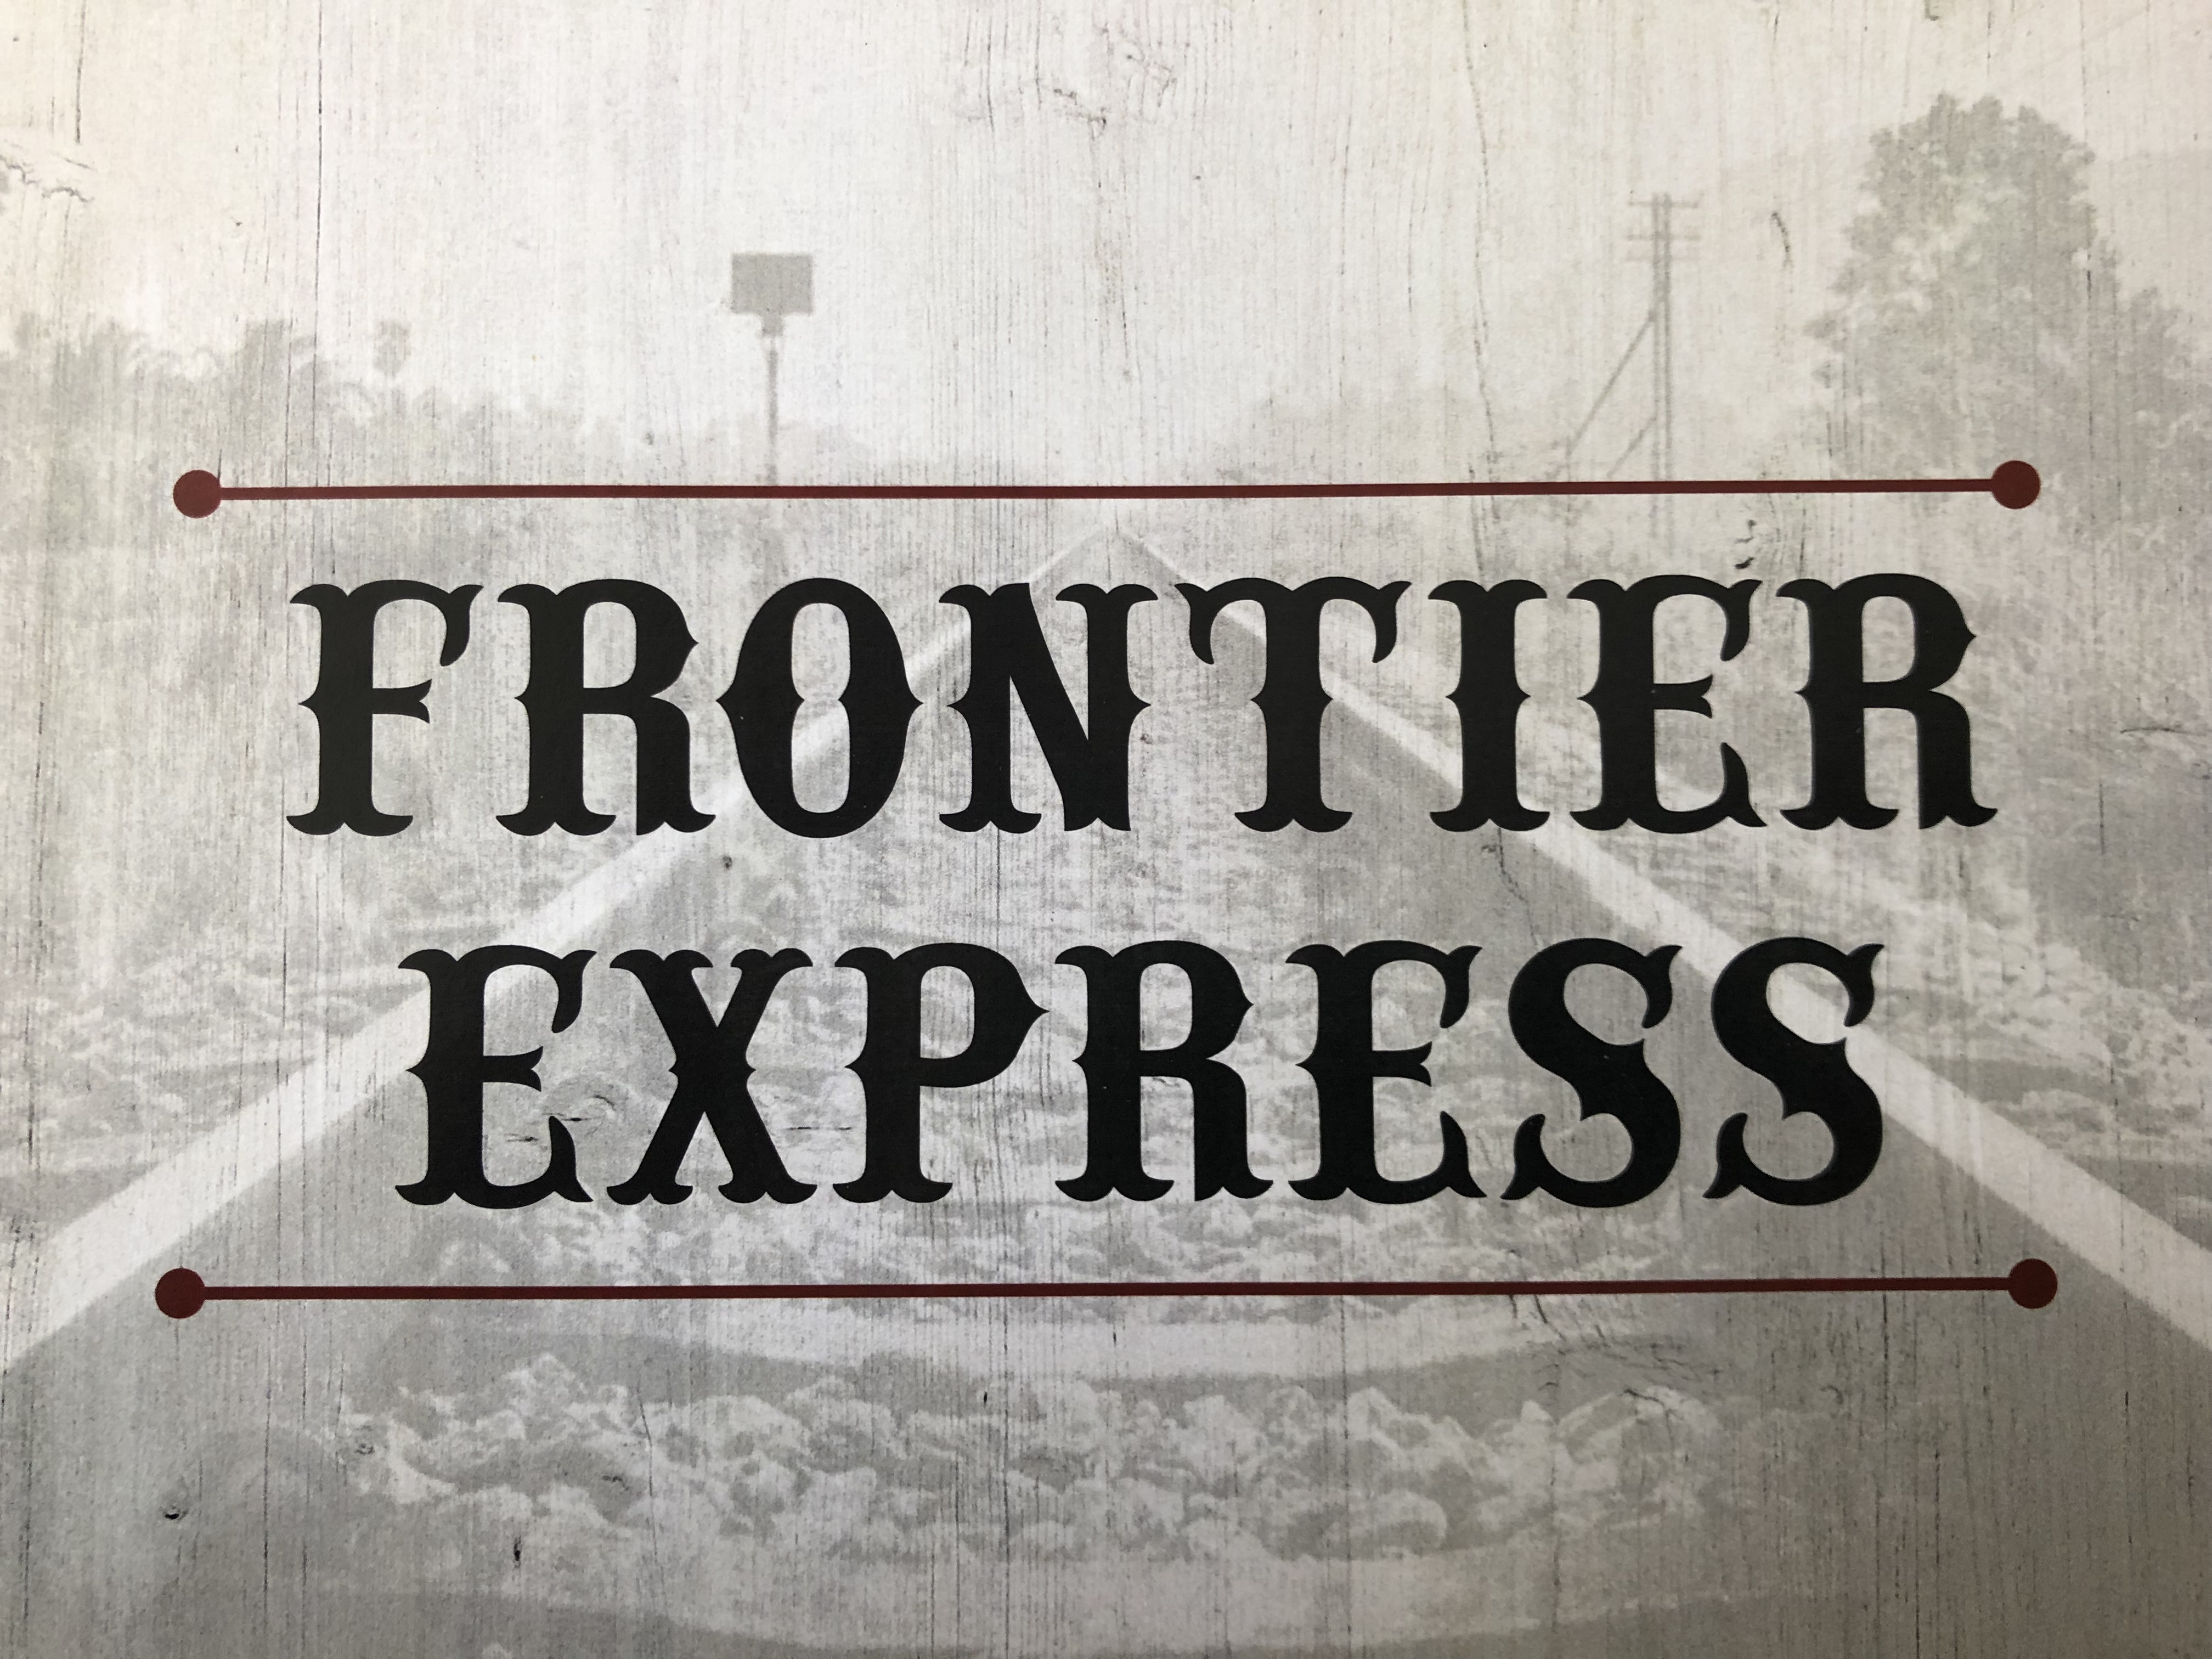 Frontier Express